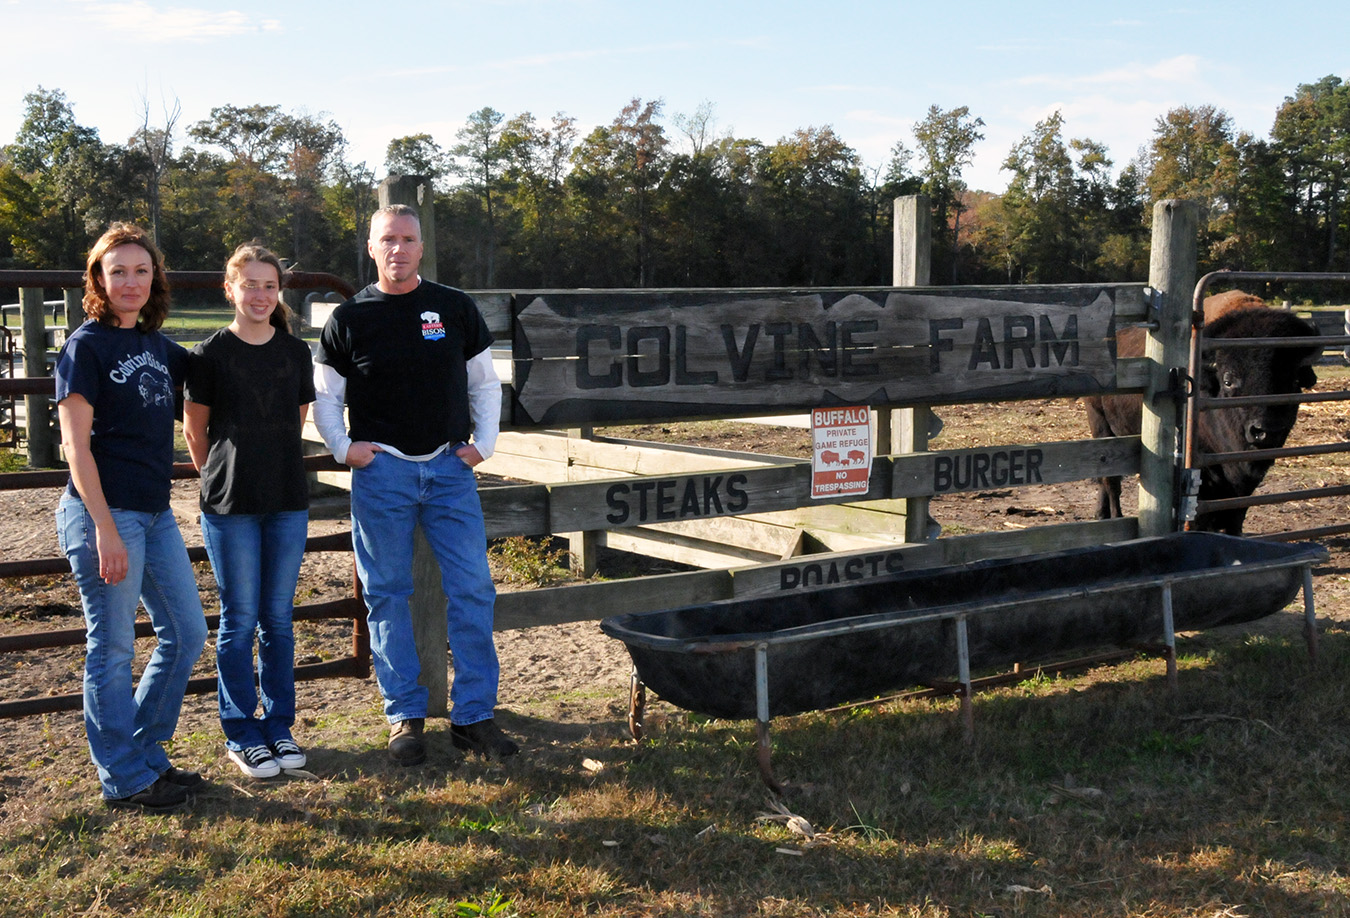 Bison farm owners Bobbi and Allen Lester pose with their daughter in front of the family farm.